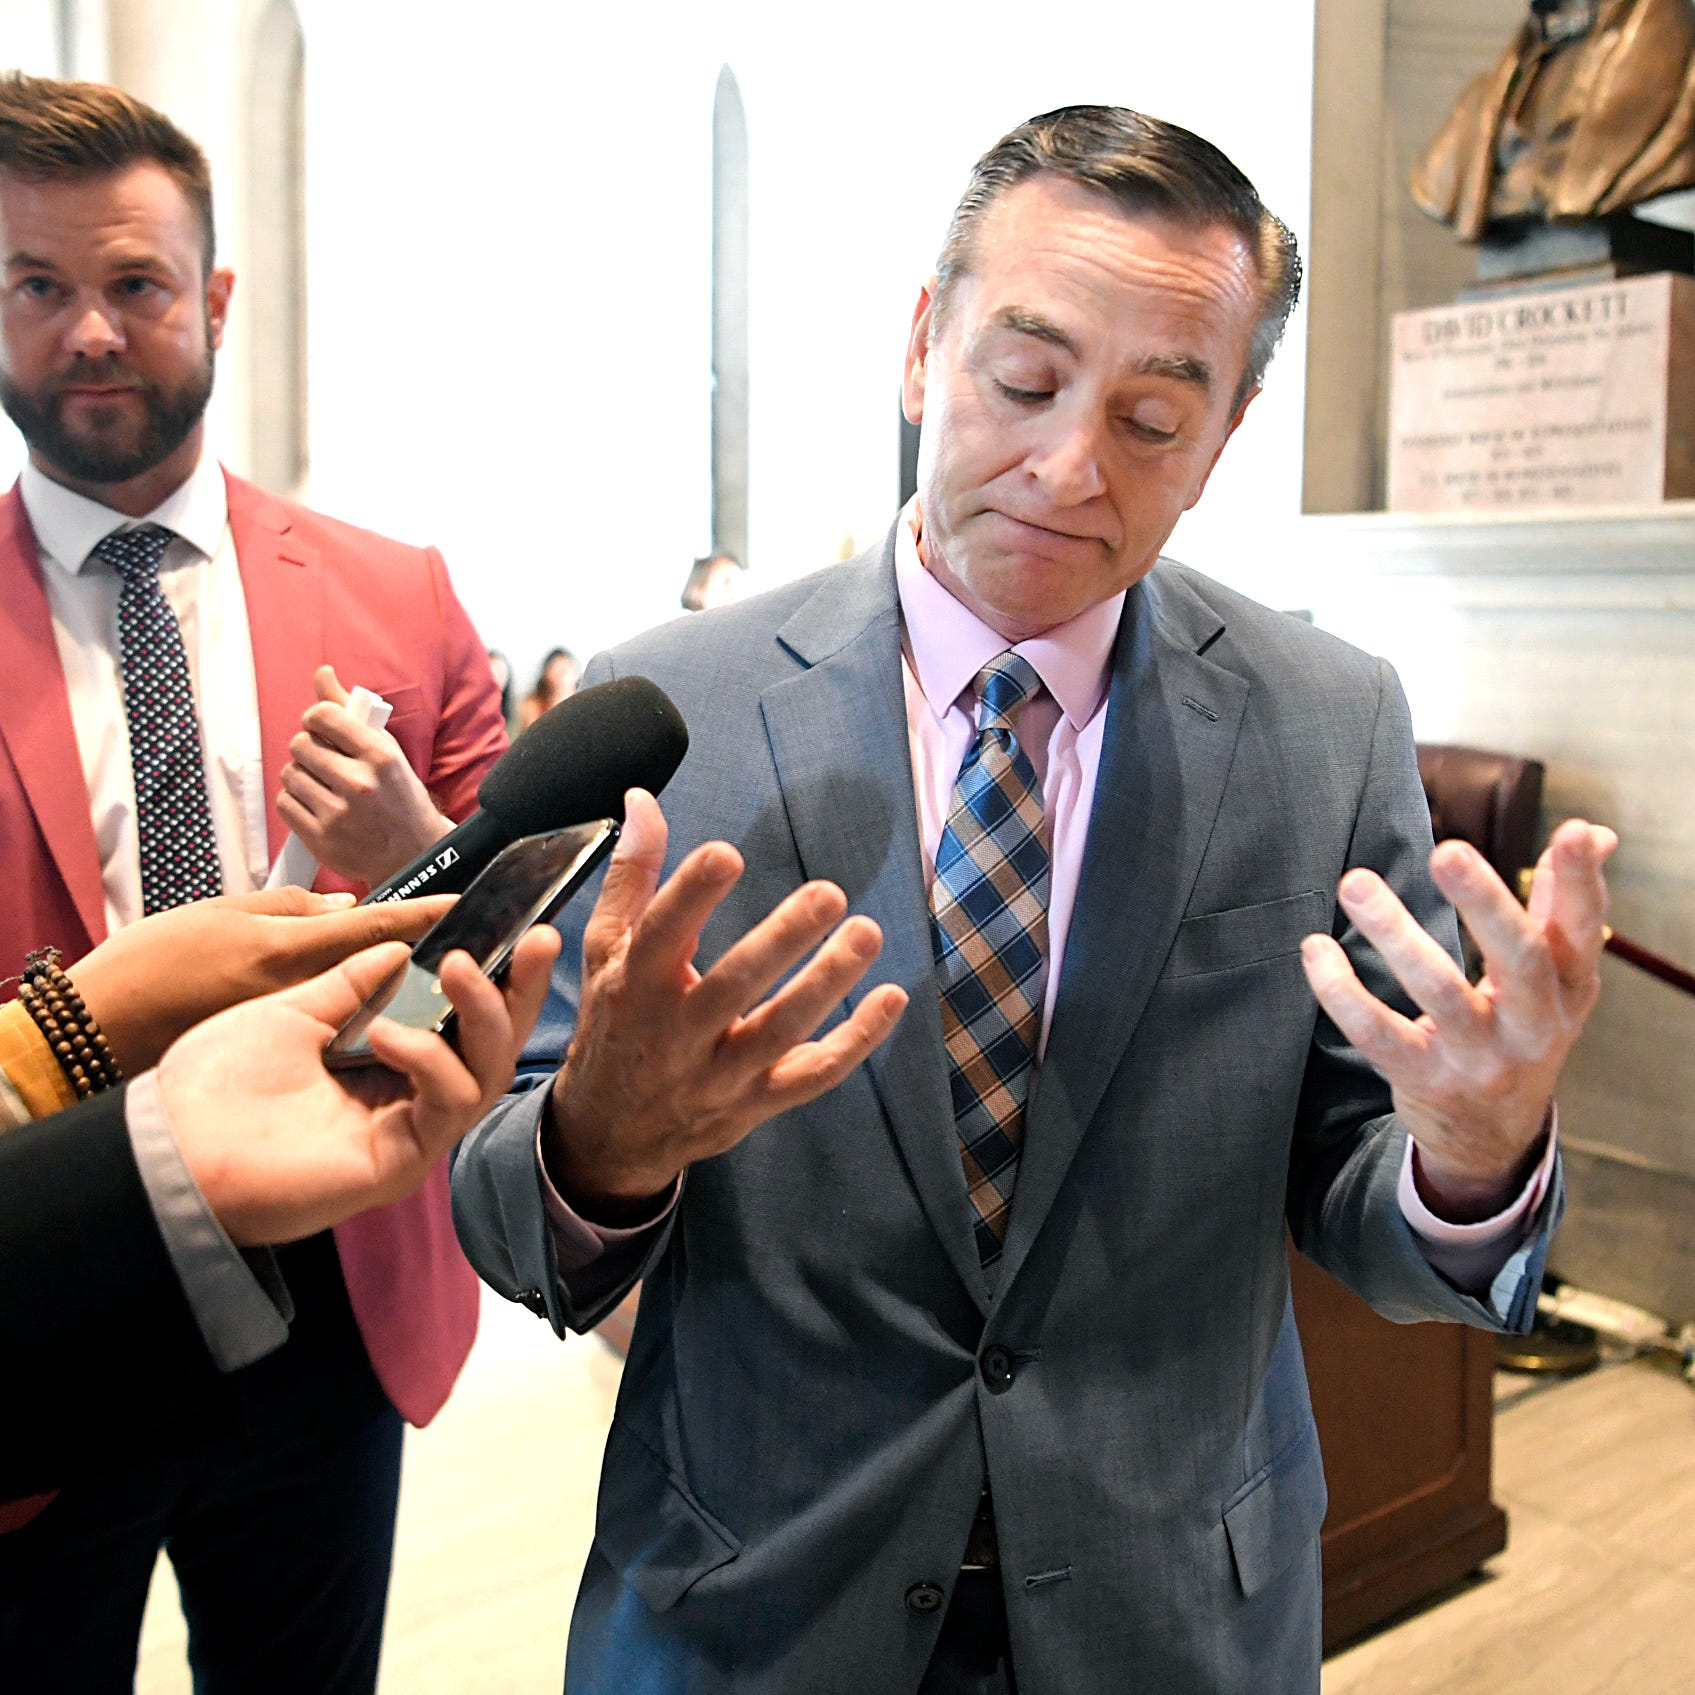 Reporters follow and ask questions of House Speaker Glen Casada, right, regarding a bill during the legislative session May 1, 2019. Casada's then chief of staff, Cade Cothren, stands at left.